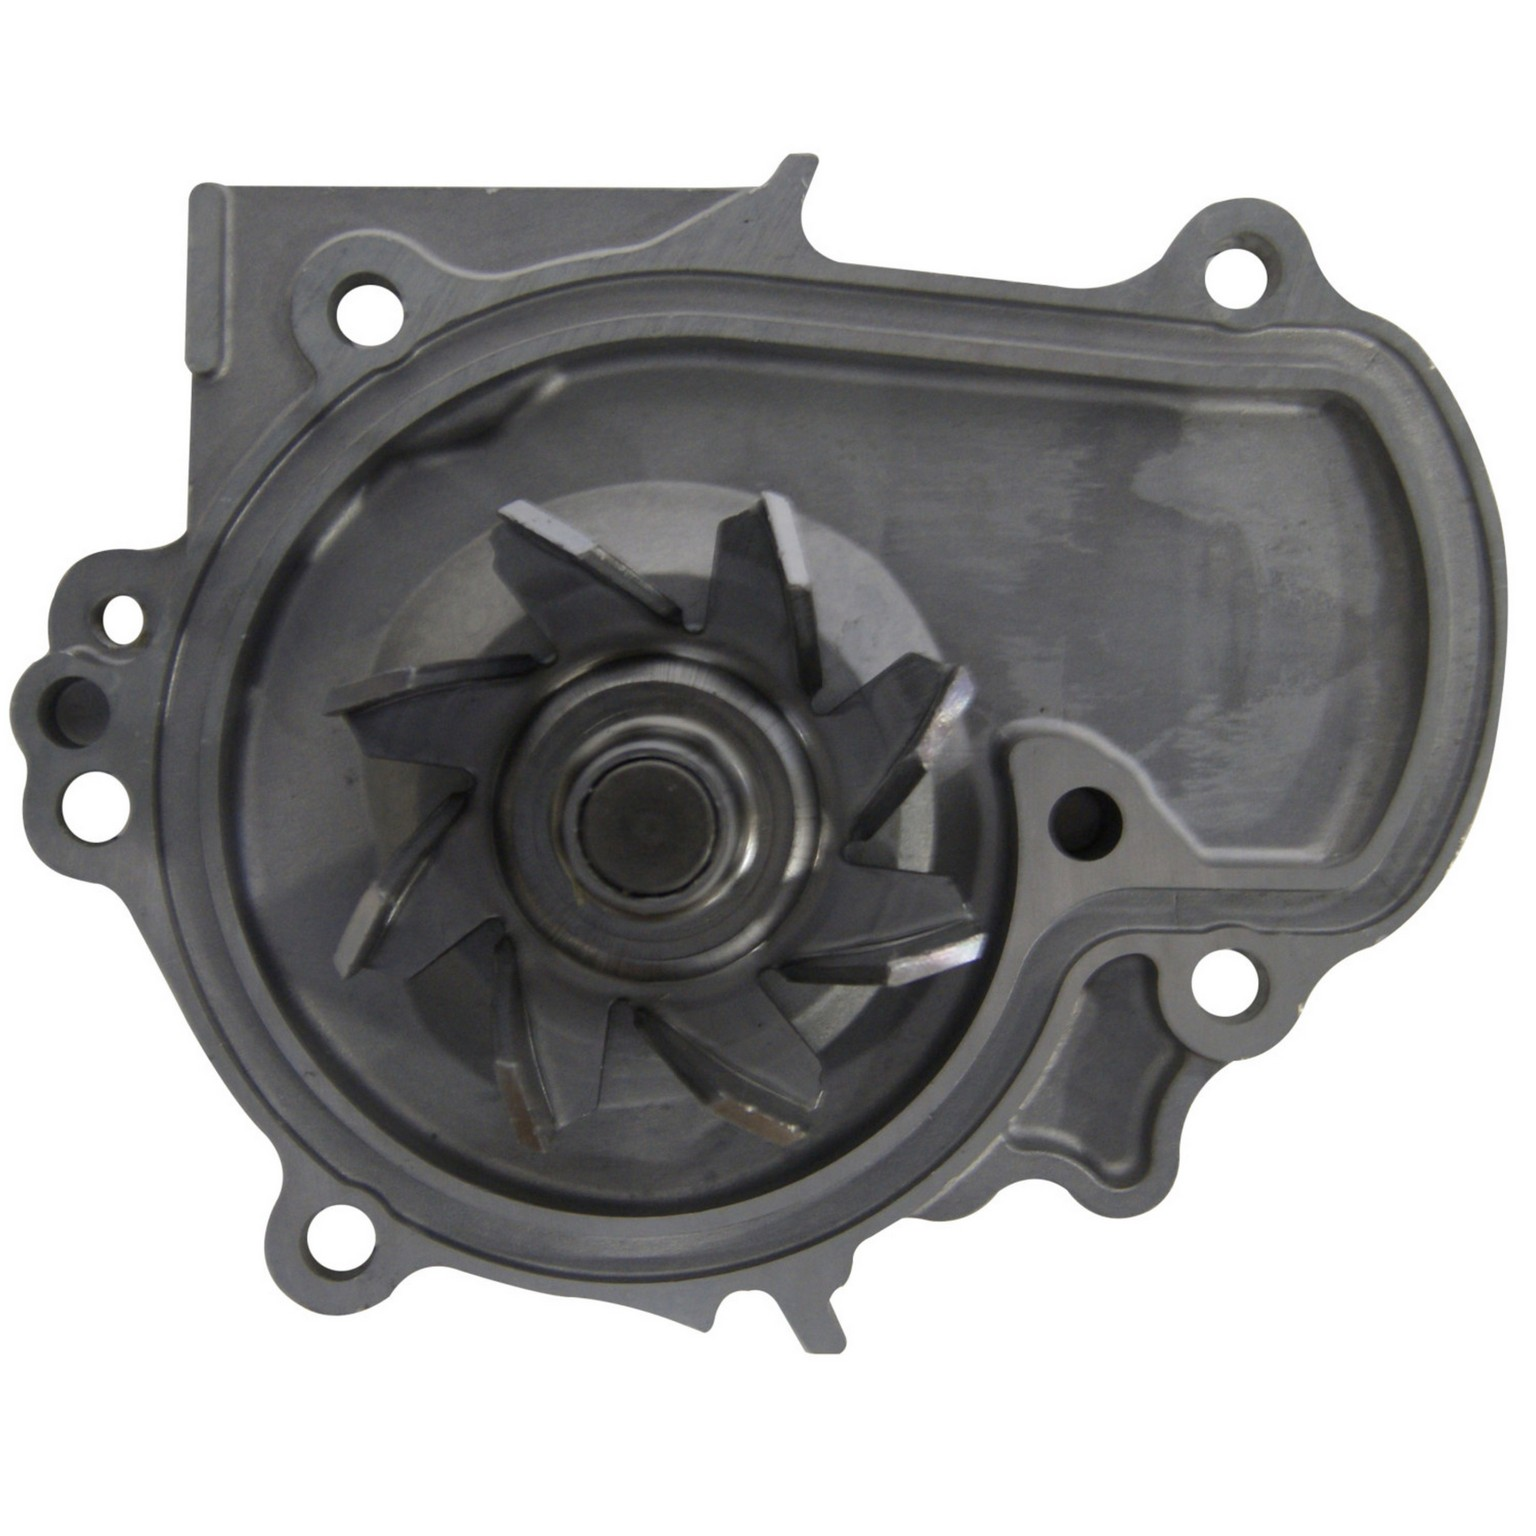 1998 Acura TL Engine Water Pump G6 135-2090 ...